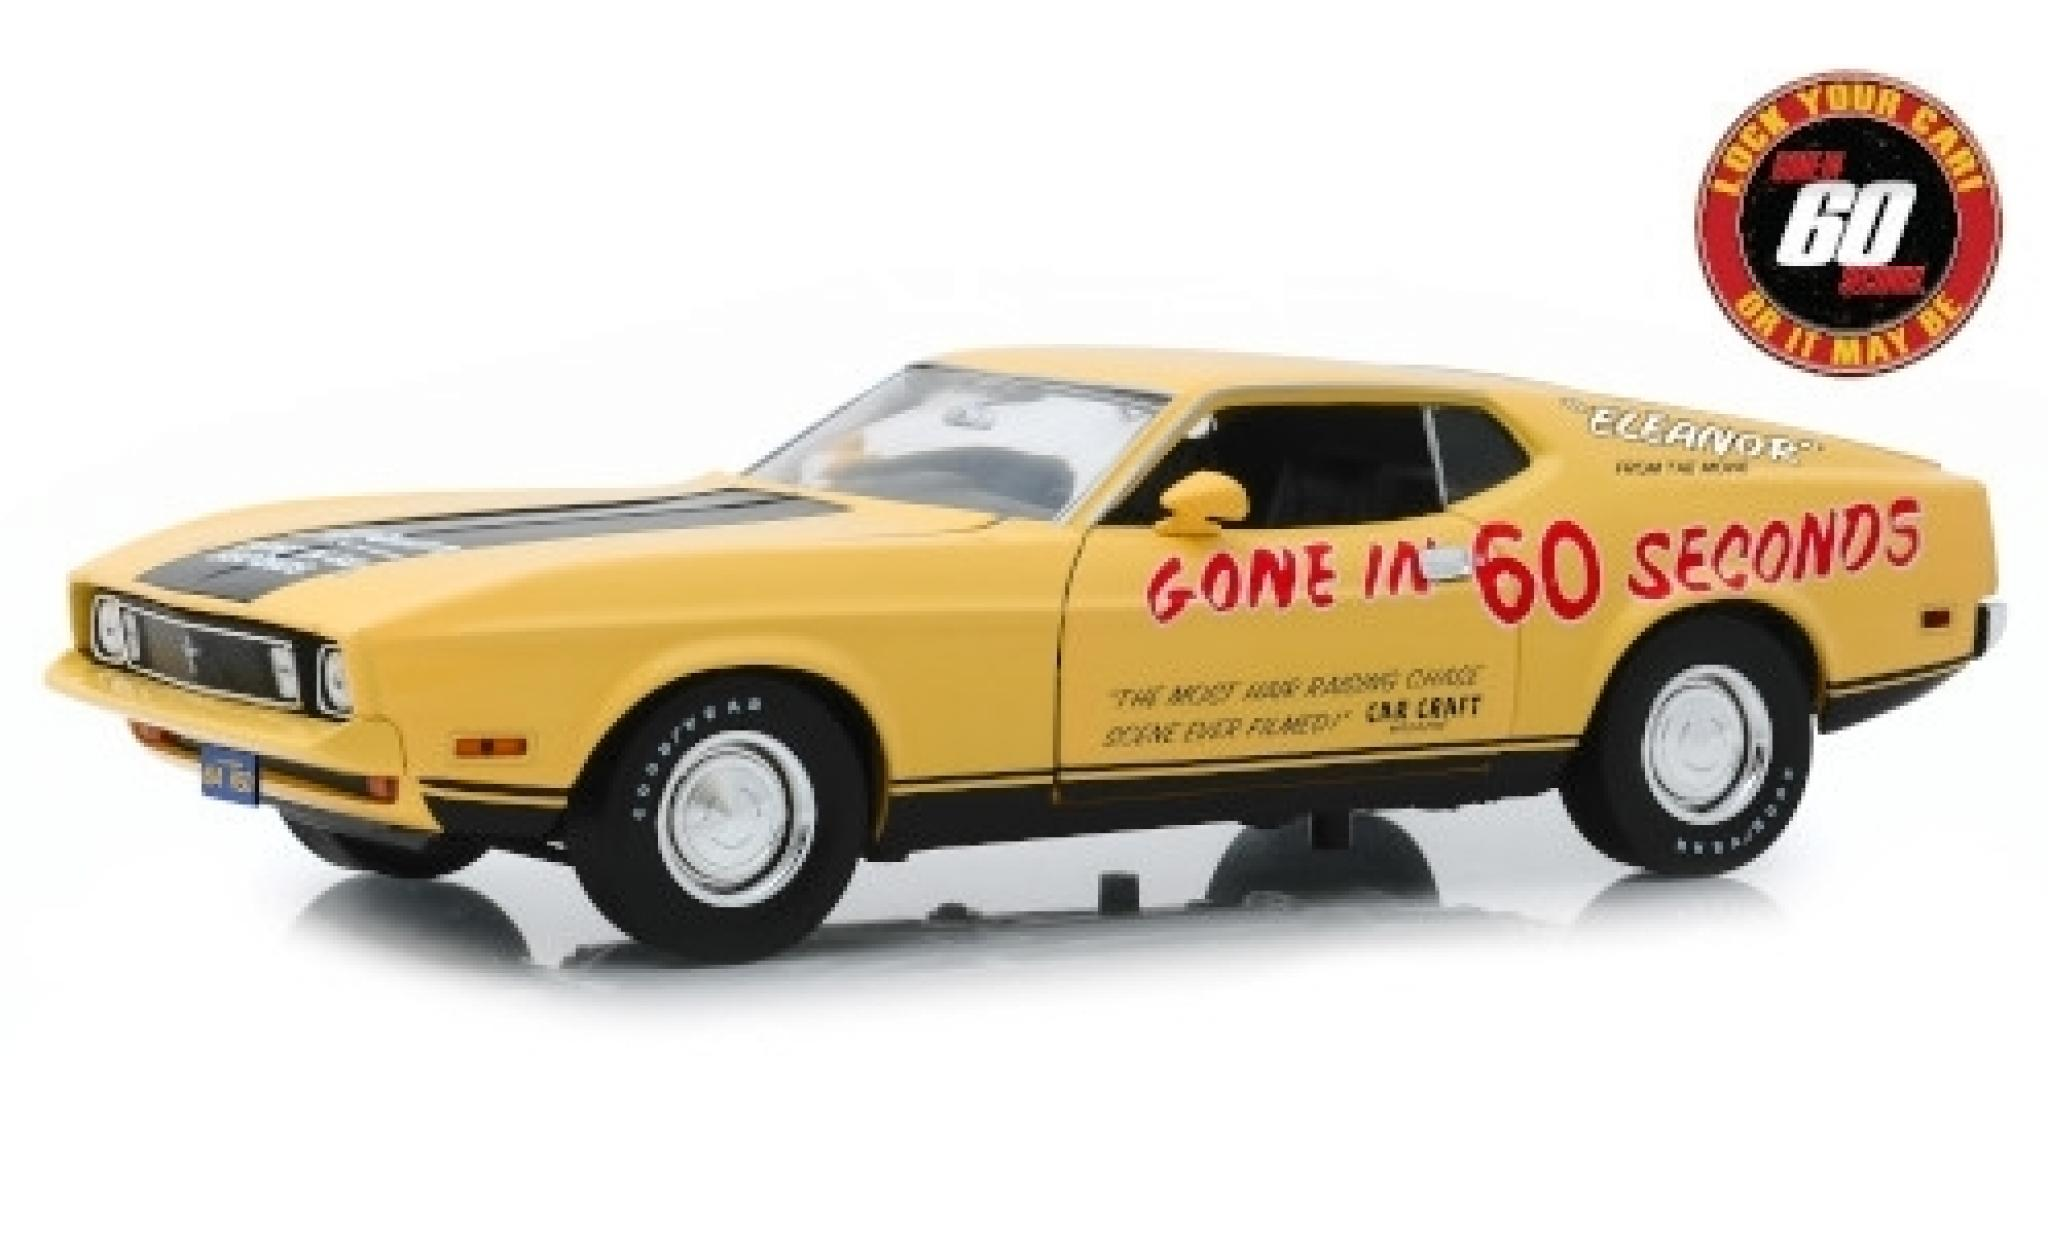 Ford Mustang 1/18 Greenlight Mach 1 Eleanor Gone in 60 Seconds 1973